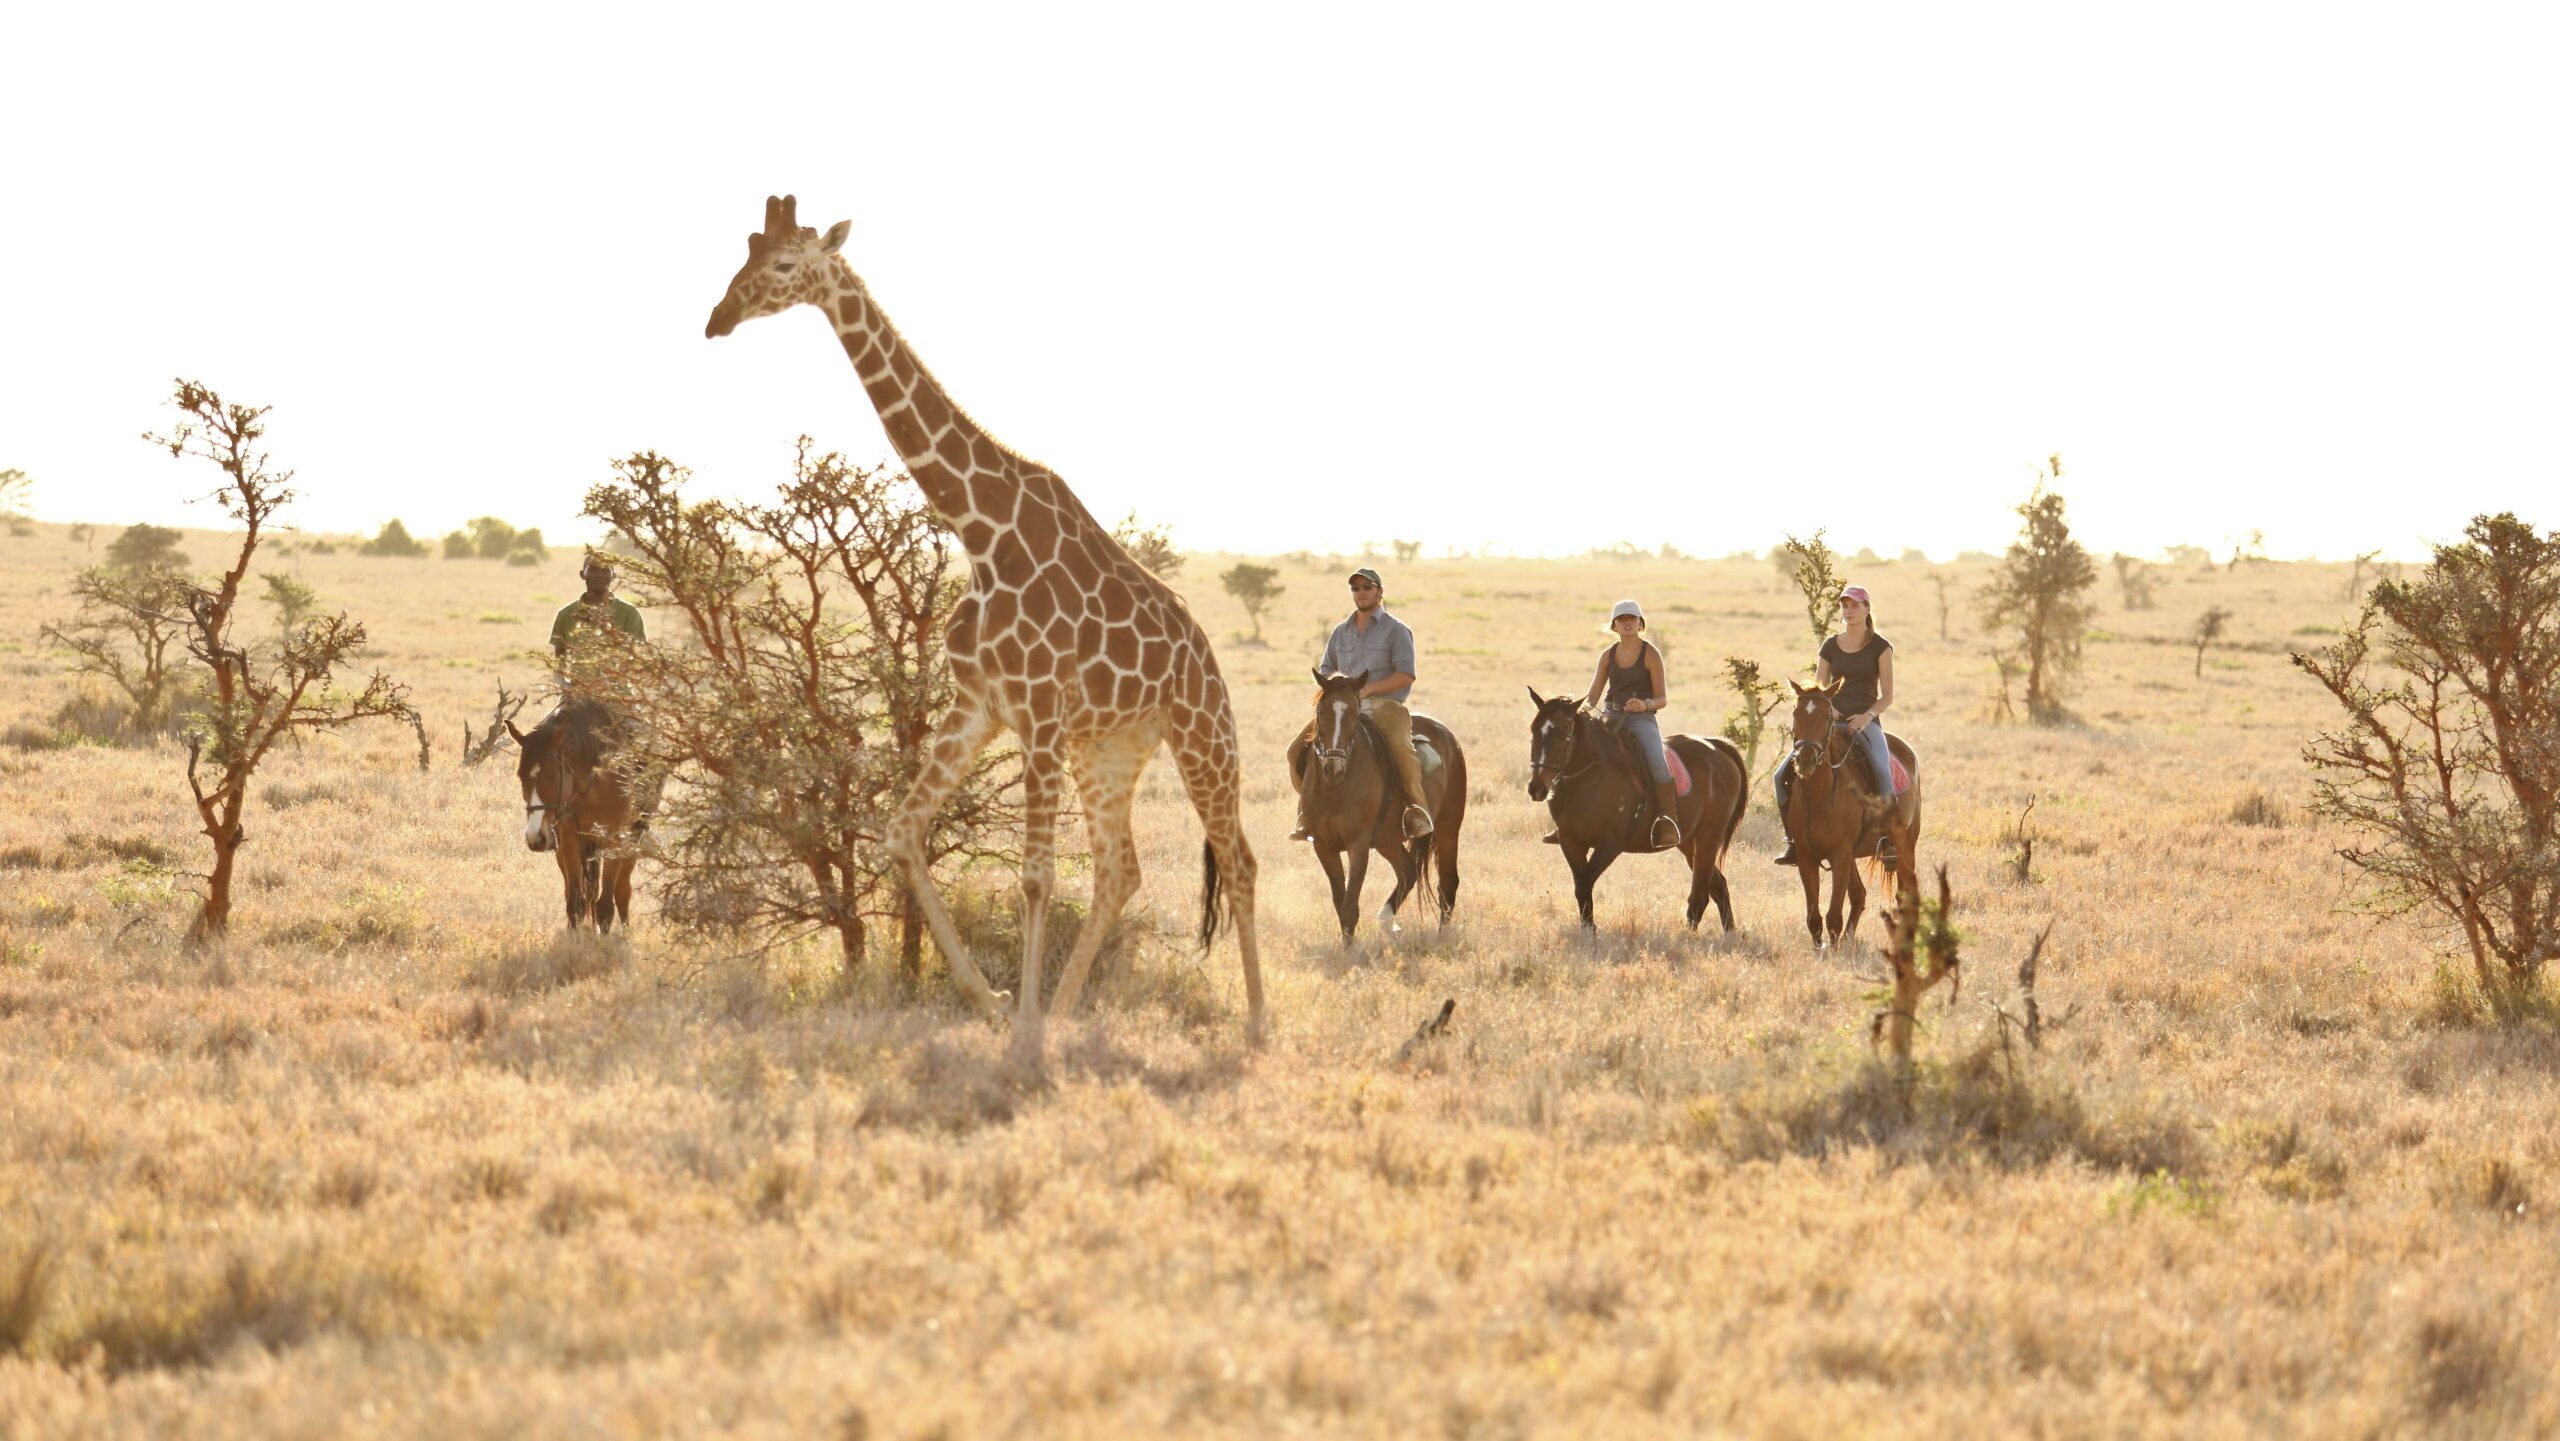 a luxury kenya safari offers giraffe followed by three guests on horseback in the bush at lewa wilderness